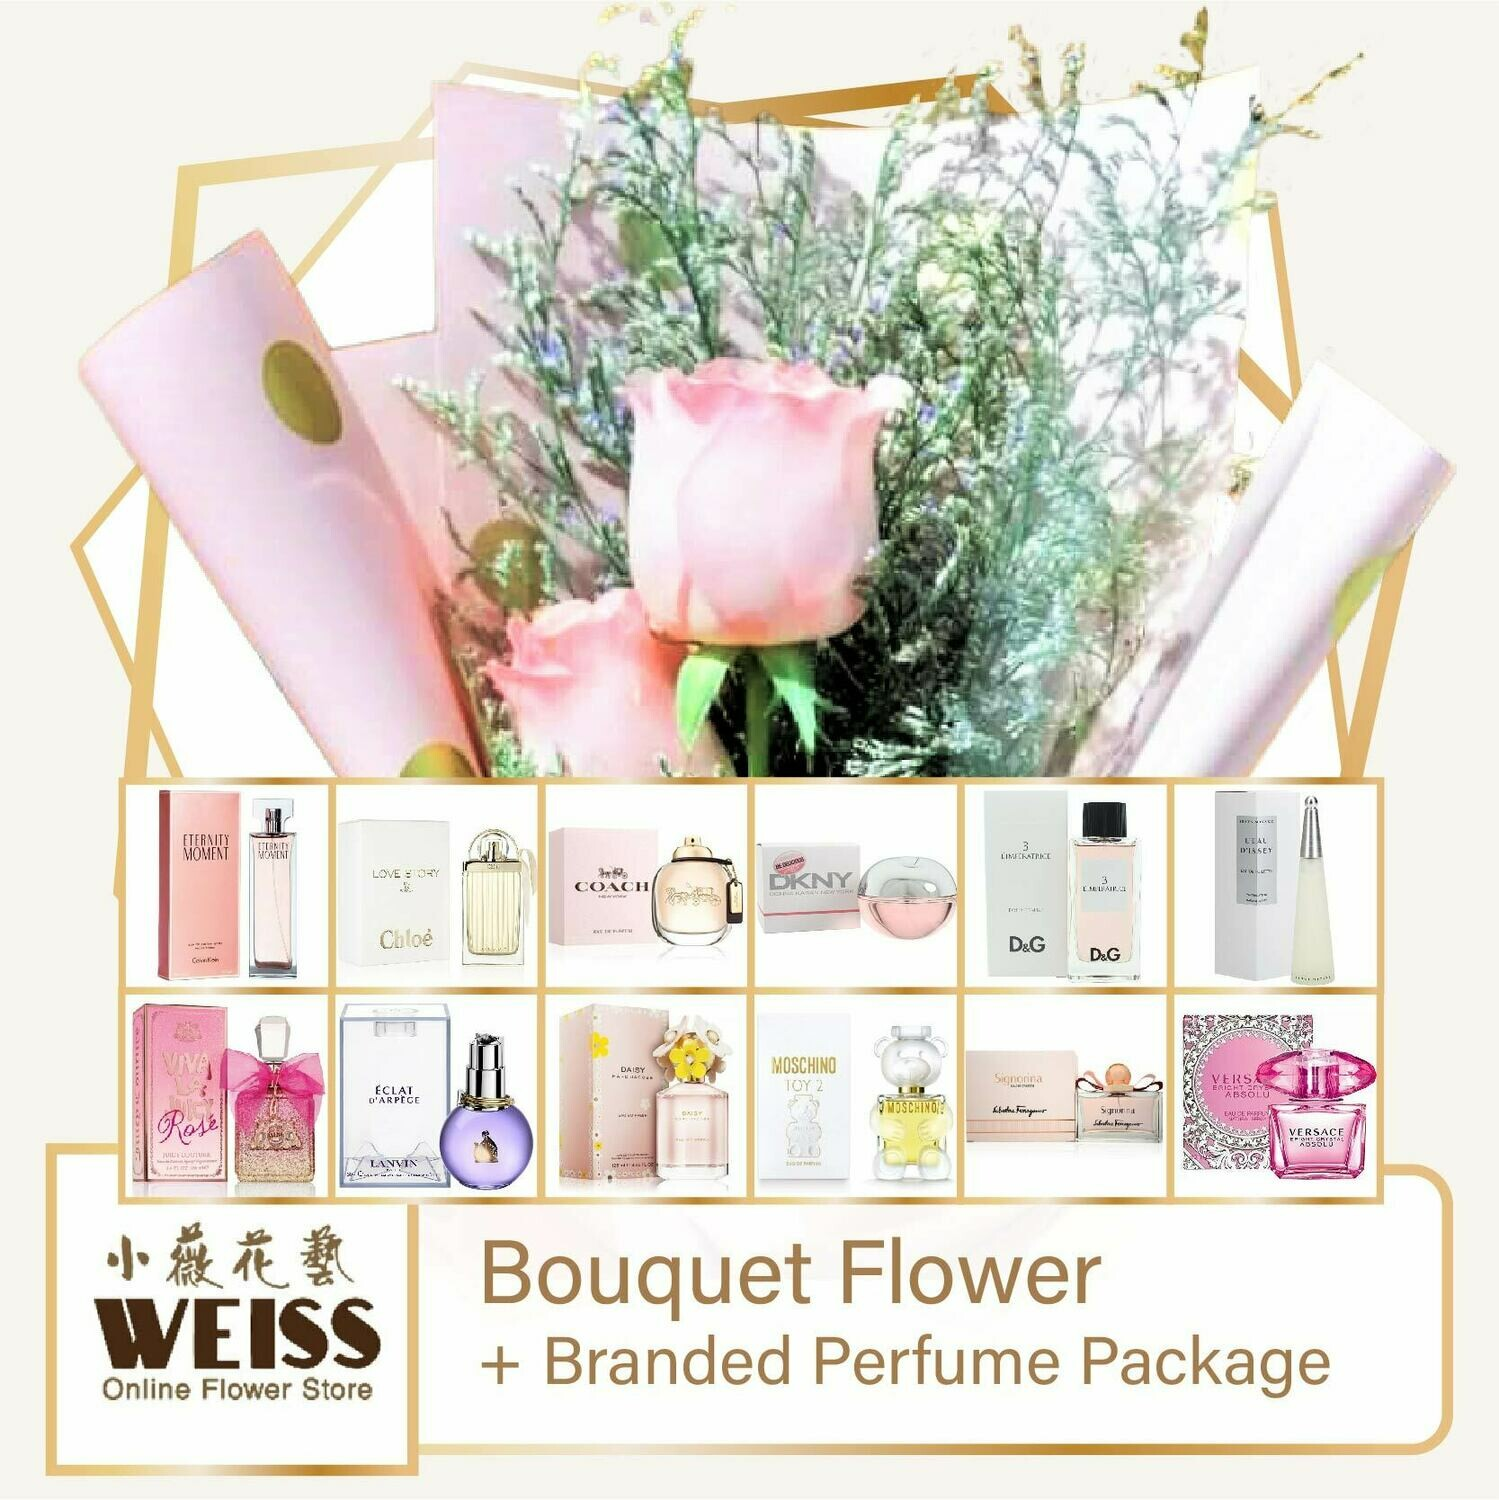 Weiss Florist 3 stalks Pink Roses  + Branded Perfume Package (Free Shipping! Only deliver in JB)